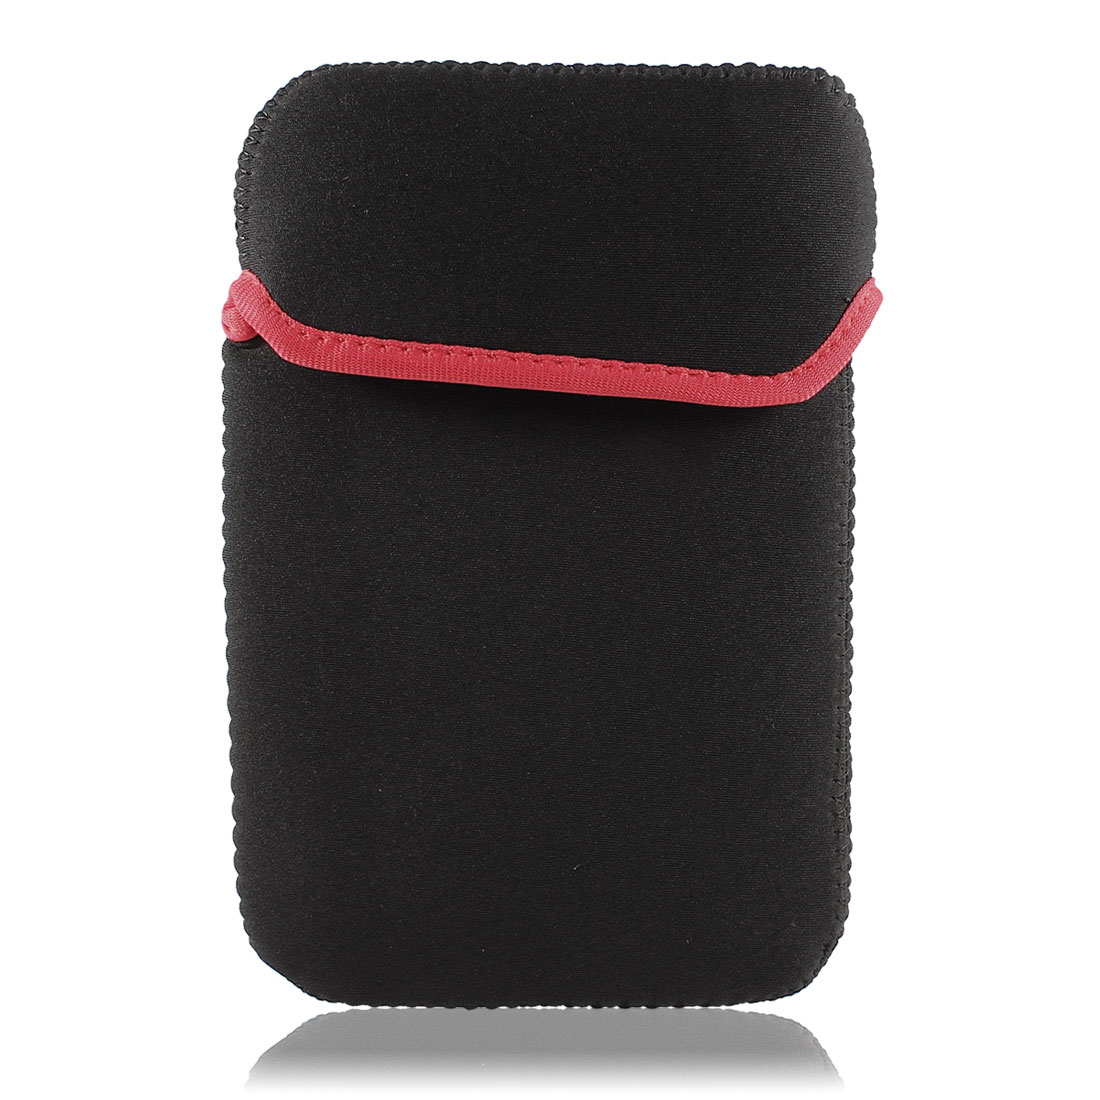 "Black Soft Neoprene Sleeve Bag Case for 7"" Google Nexus Amazon Kindle Fire"